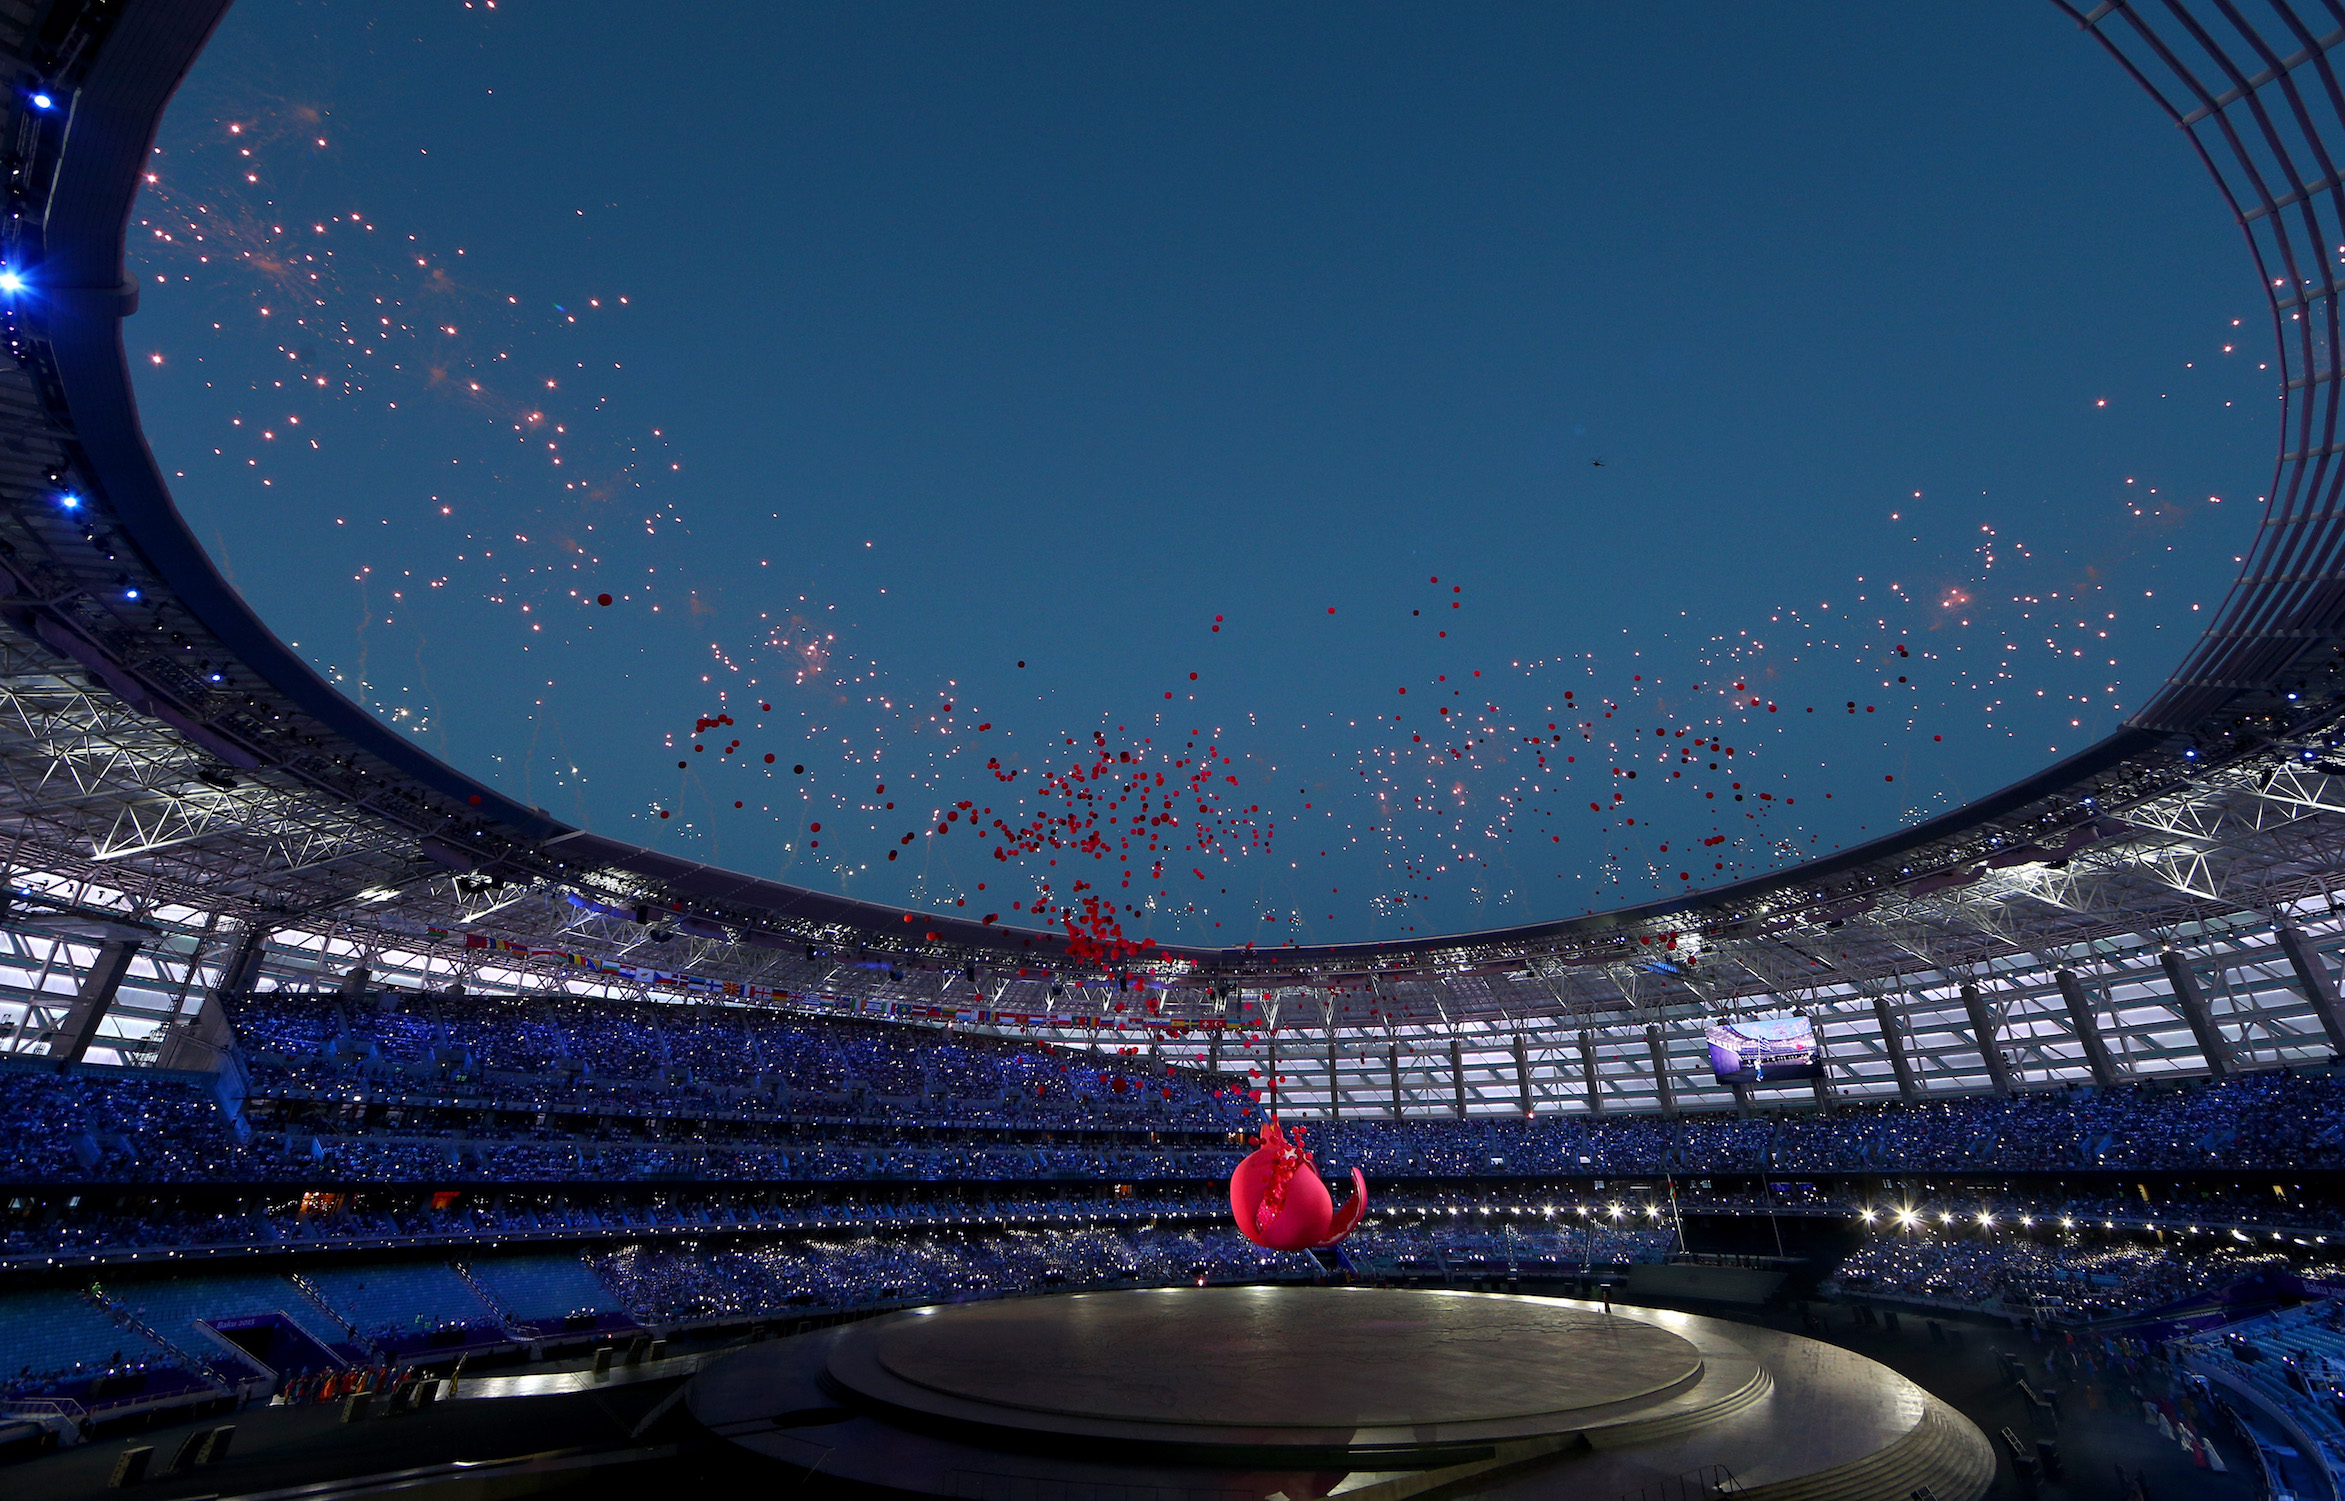 BAKU, AZERBAIJAN - JUNE 12: A general view of the stadium as a giant Pomegranate representing abundance, rebirth, love and good luck splits open to release its seeds during the Opening Ceremony for the Baku 2015 European Games at the Olympic Stadium on June 12, 2015 in Baku, Azerbaijan. (Photo by Harry Engels/Getty Images for BEGOC)